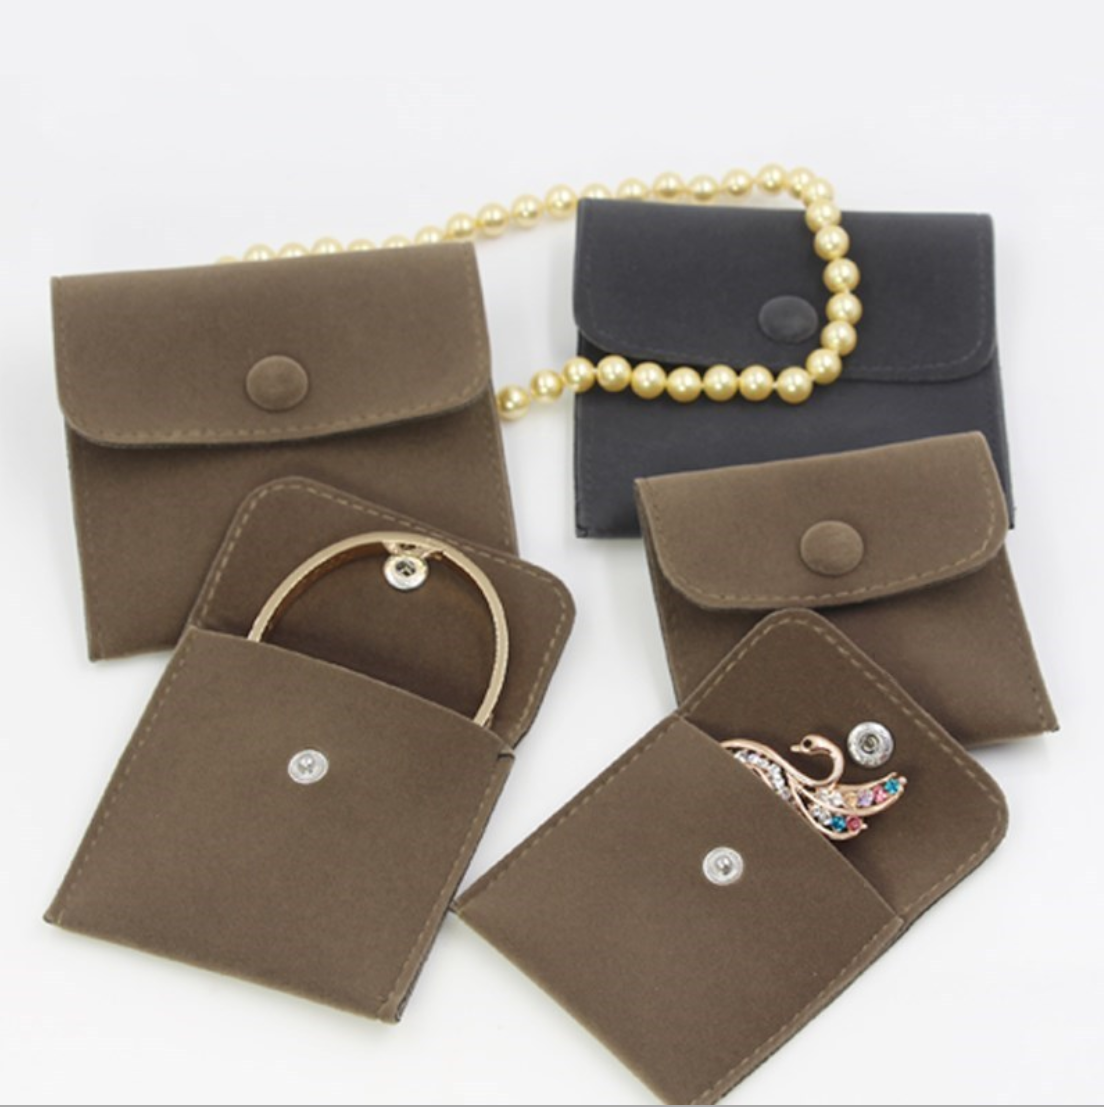 Foldable felt jewelry pouch jewellery packaging bags velvet button closure jewelry pouch brown envelope pouch